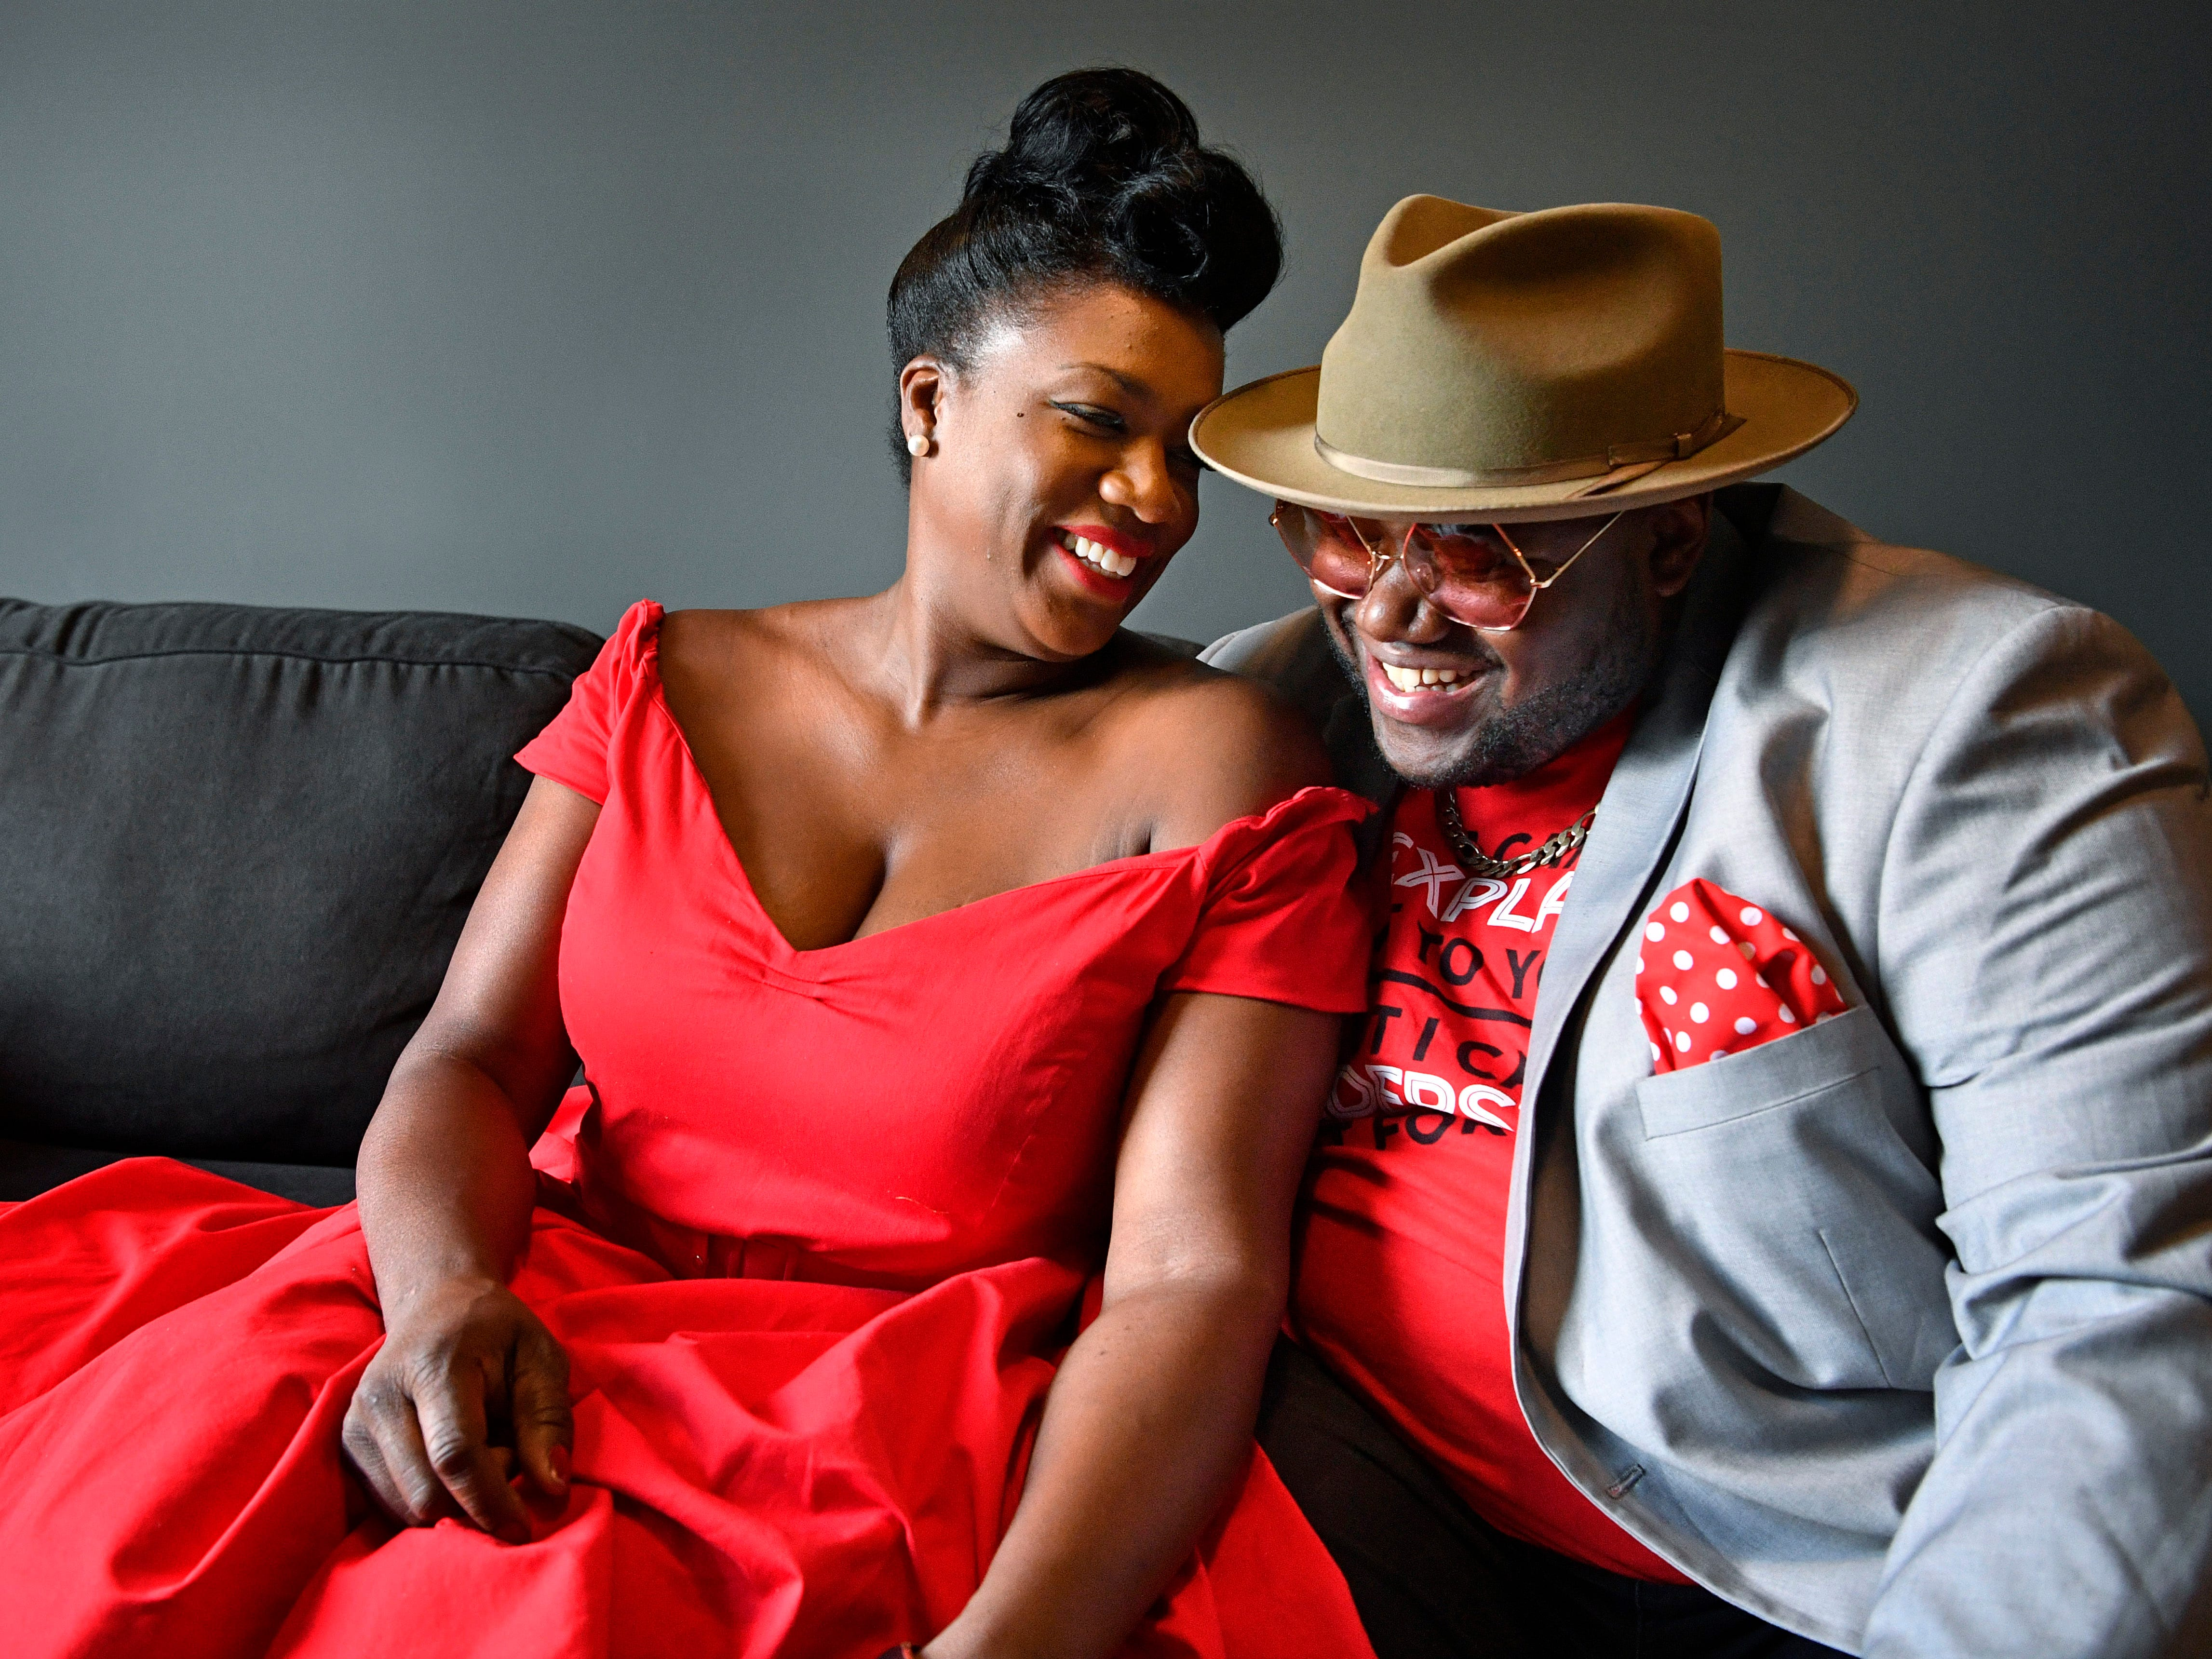 Americana duo The War and Treaty-- husband and wife Michael and Tanya Trotter -- photographed Tuesday, July 24, 2018, in Nashville, Tenn.